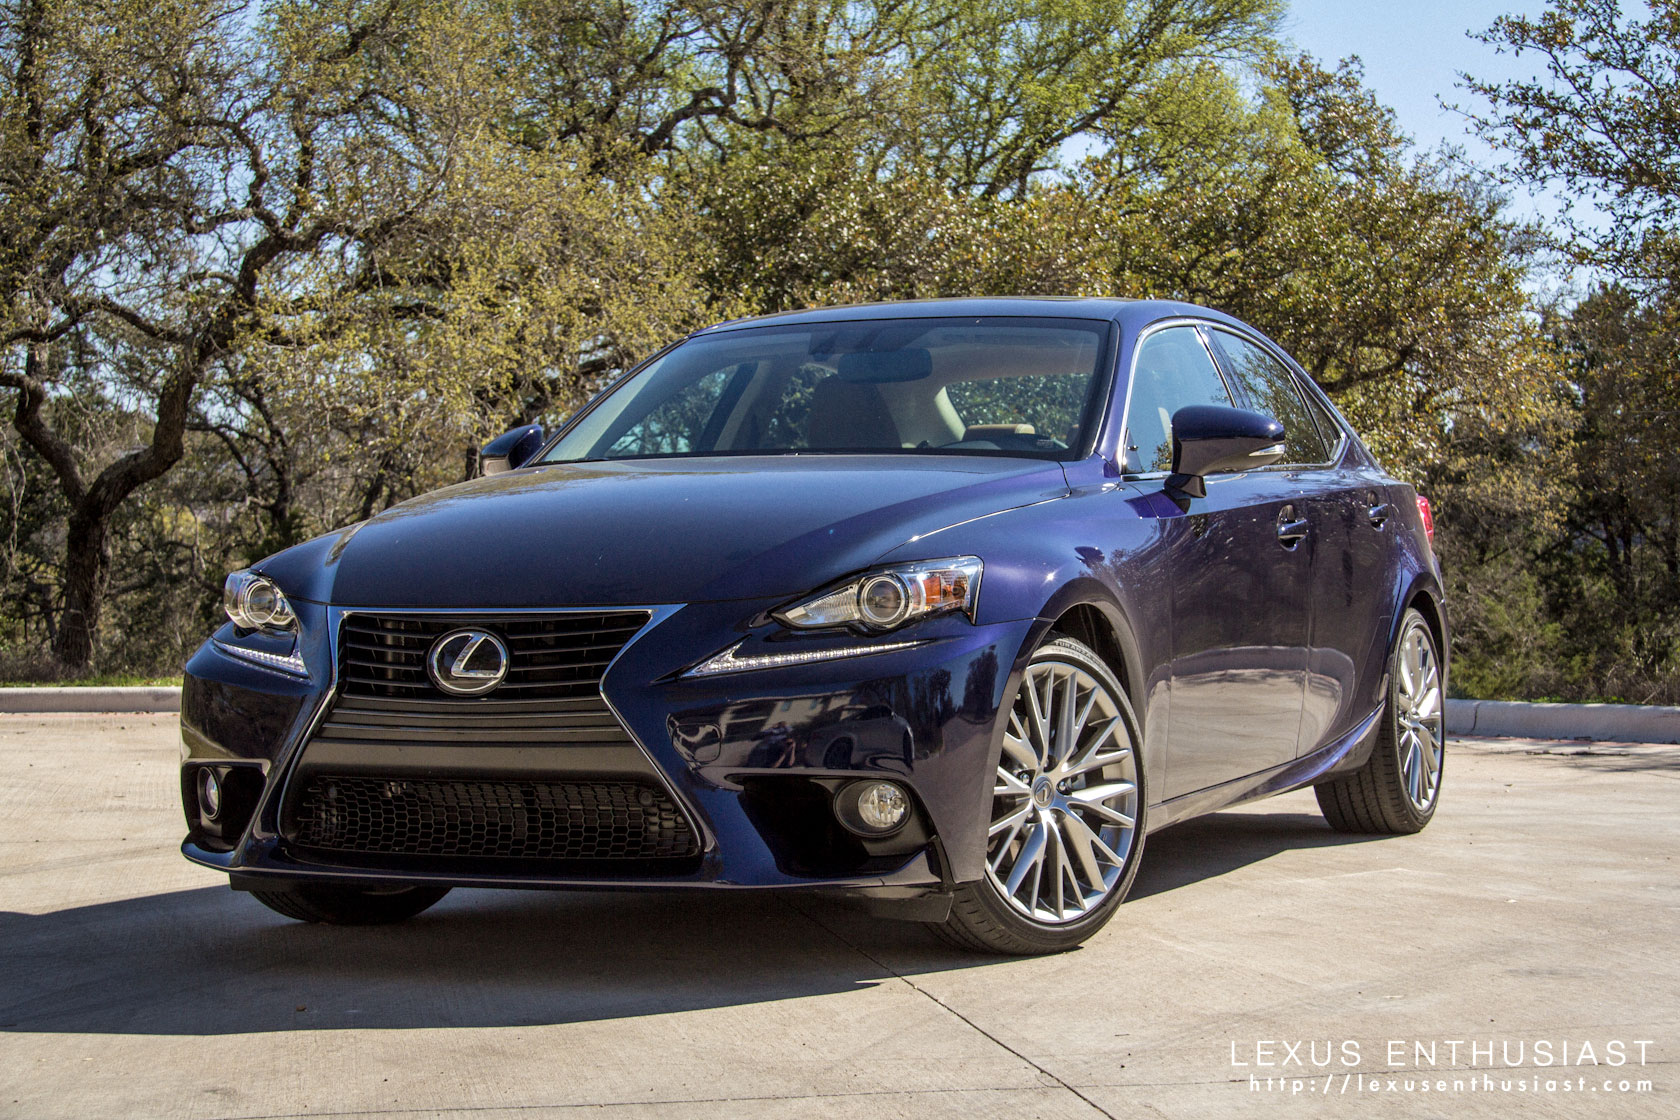 Exotic Car Rental Austin Tx 2014 Lexus Is 250 In Plano Tx | Apps Directories